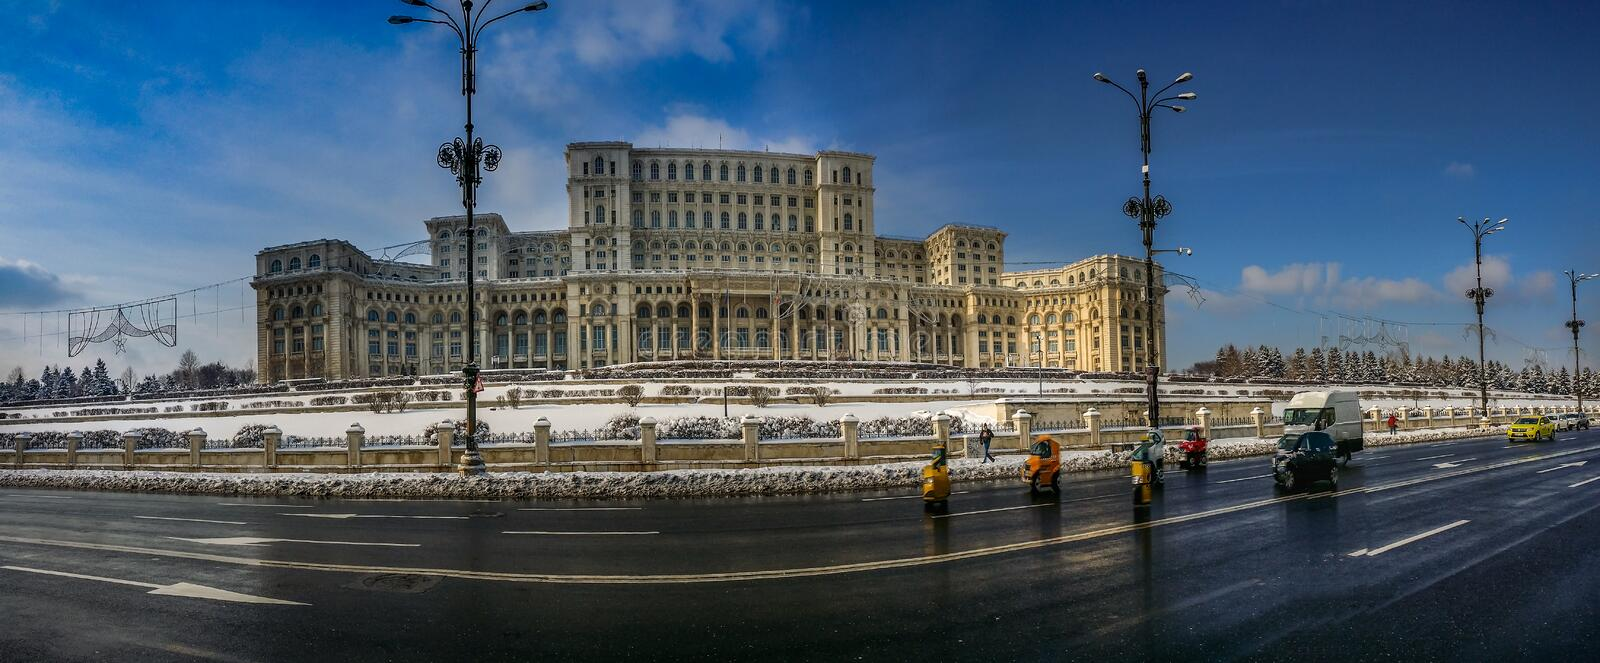 Winter at romanian parliament royalty free stock images